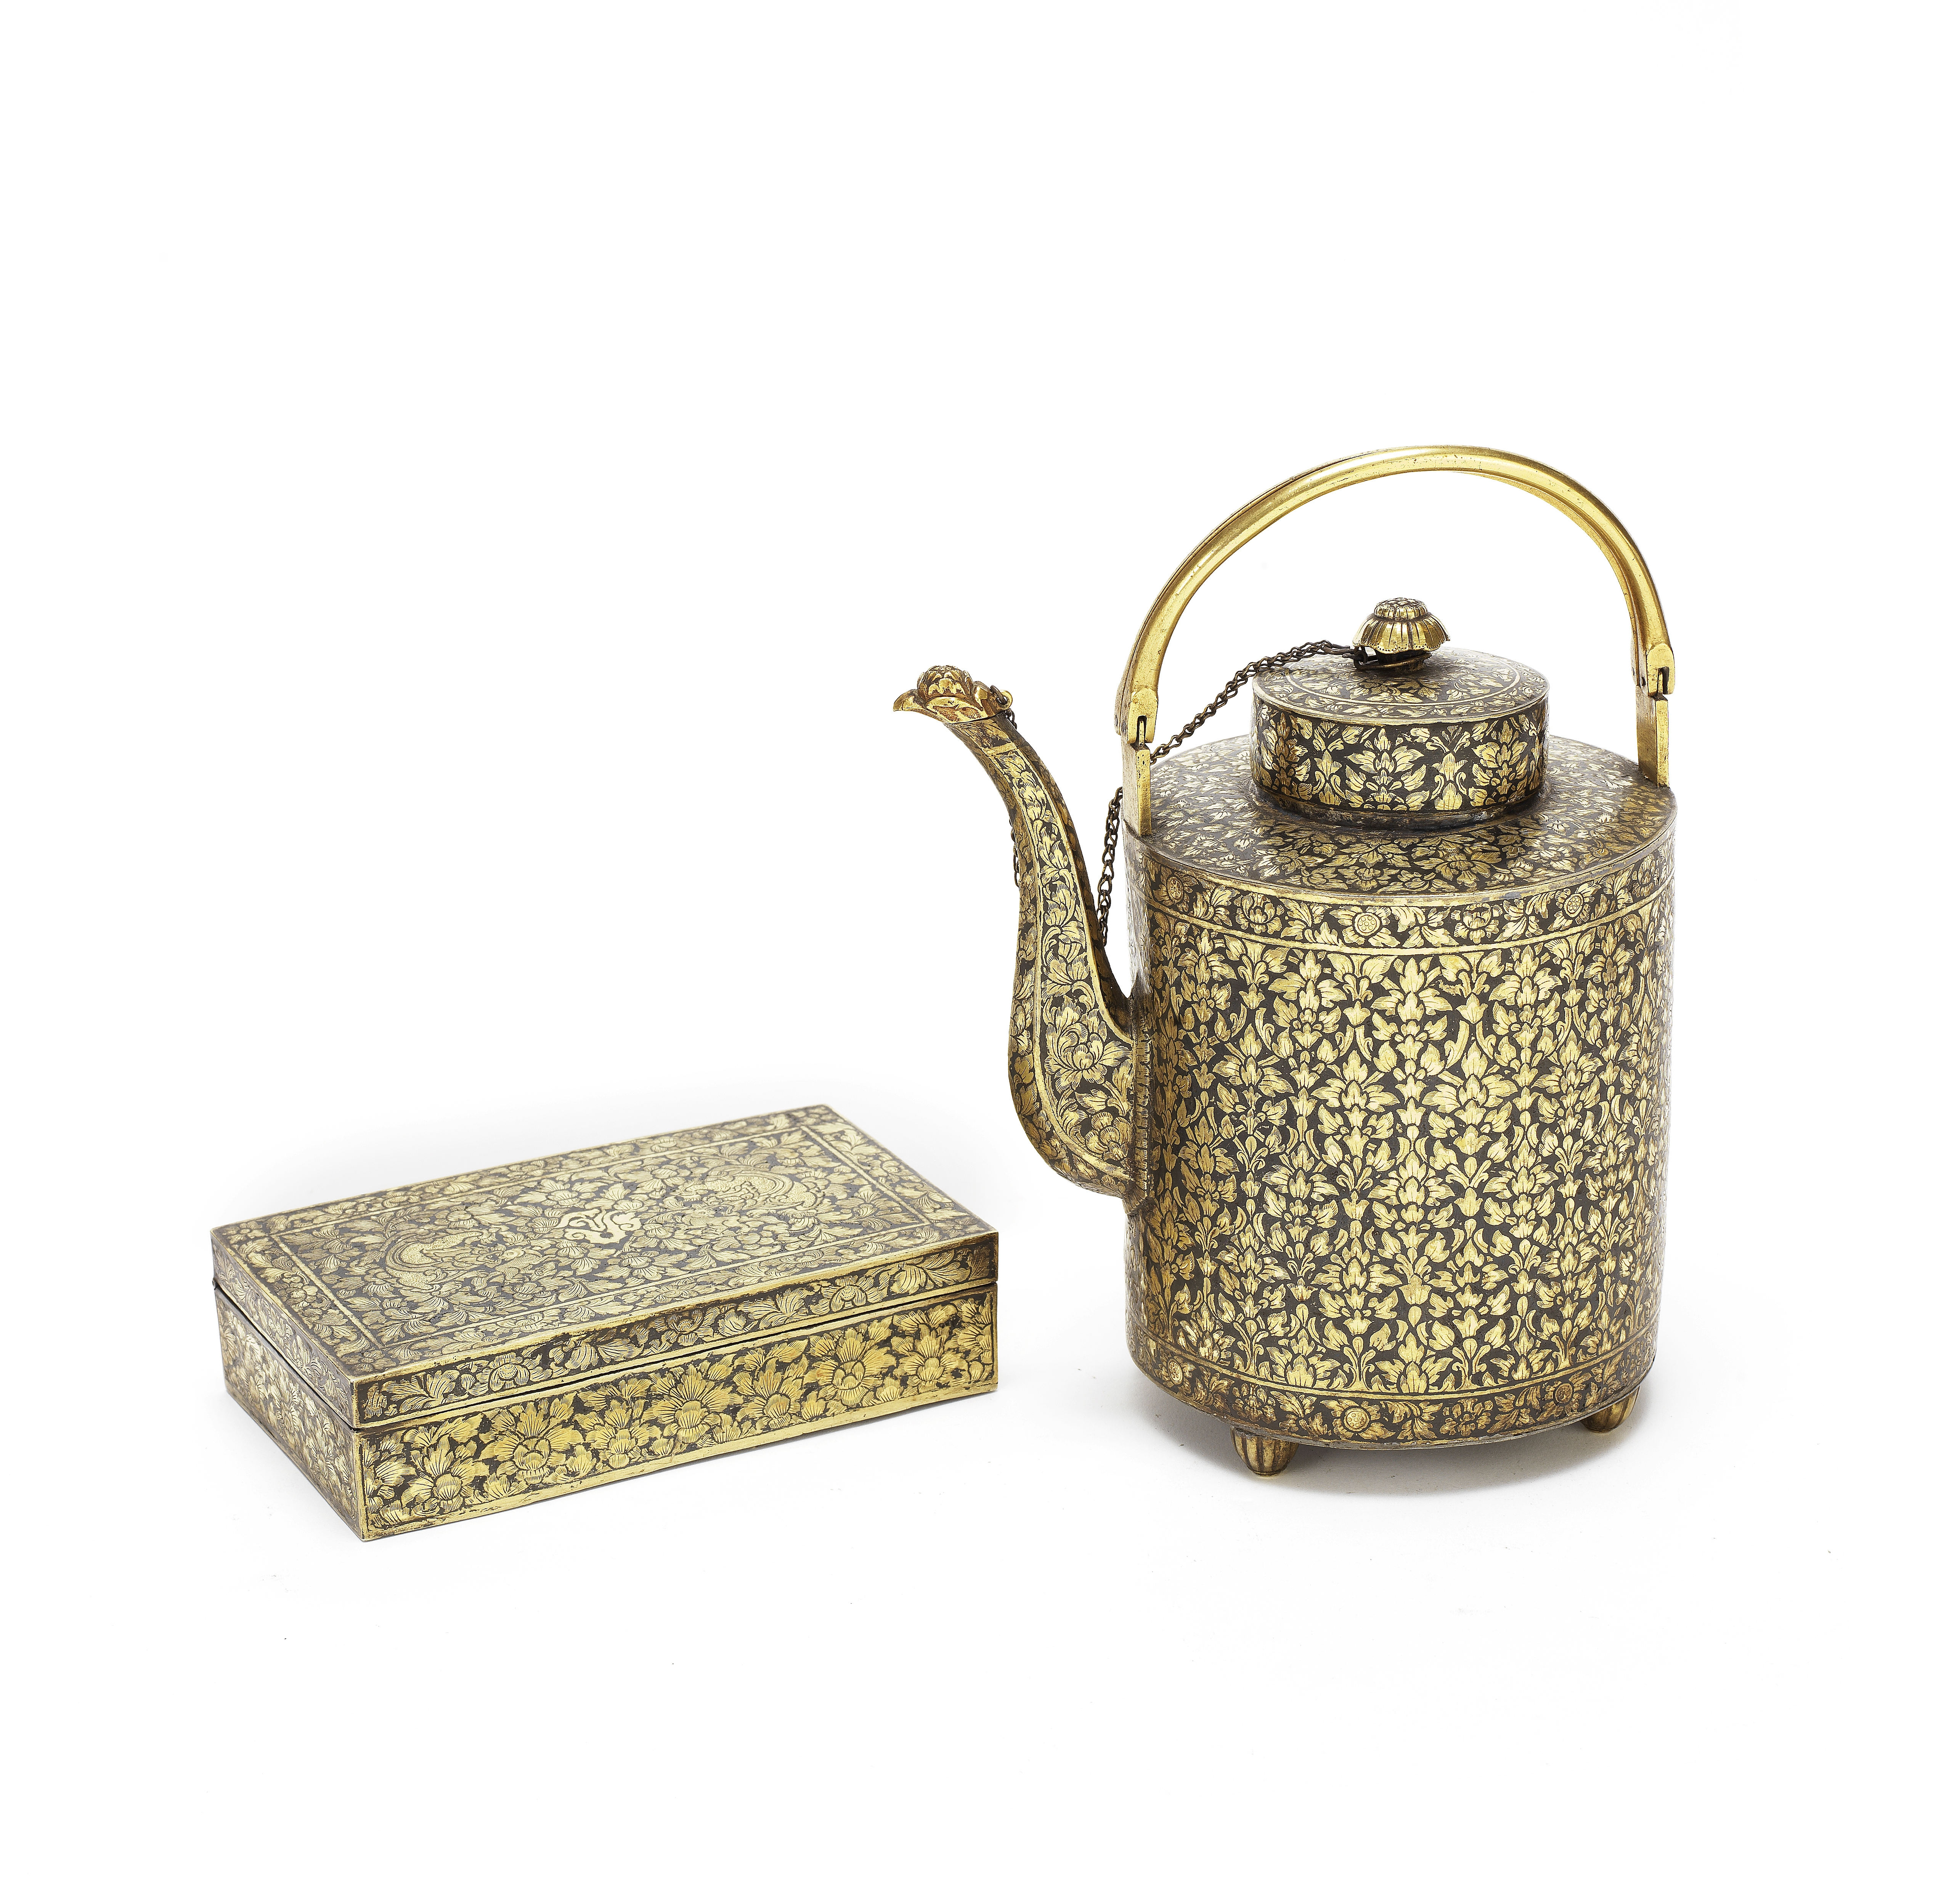 A GILDED SILVER NIELLO TEAPOT AND COVER AND A HINGED BOX AND COVER Siam, 19th century (3)